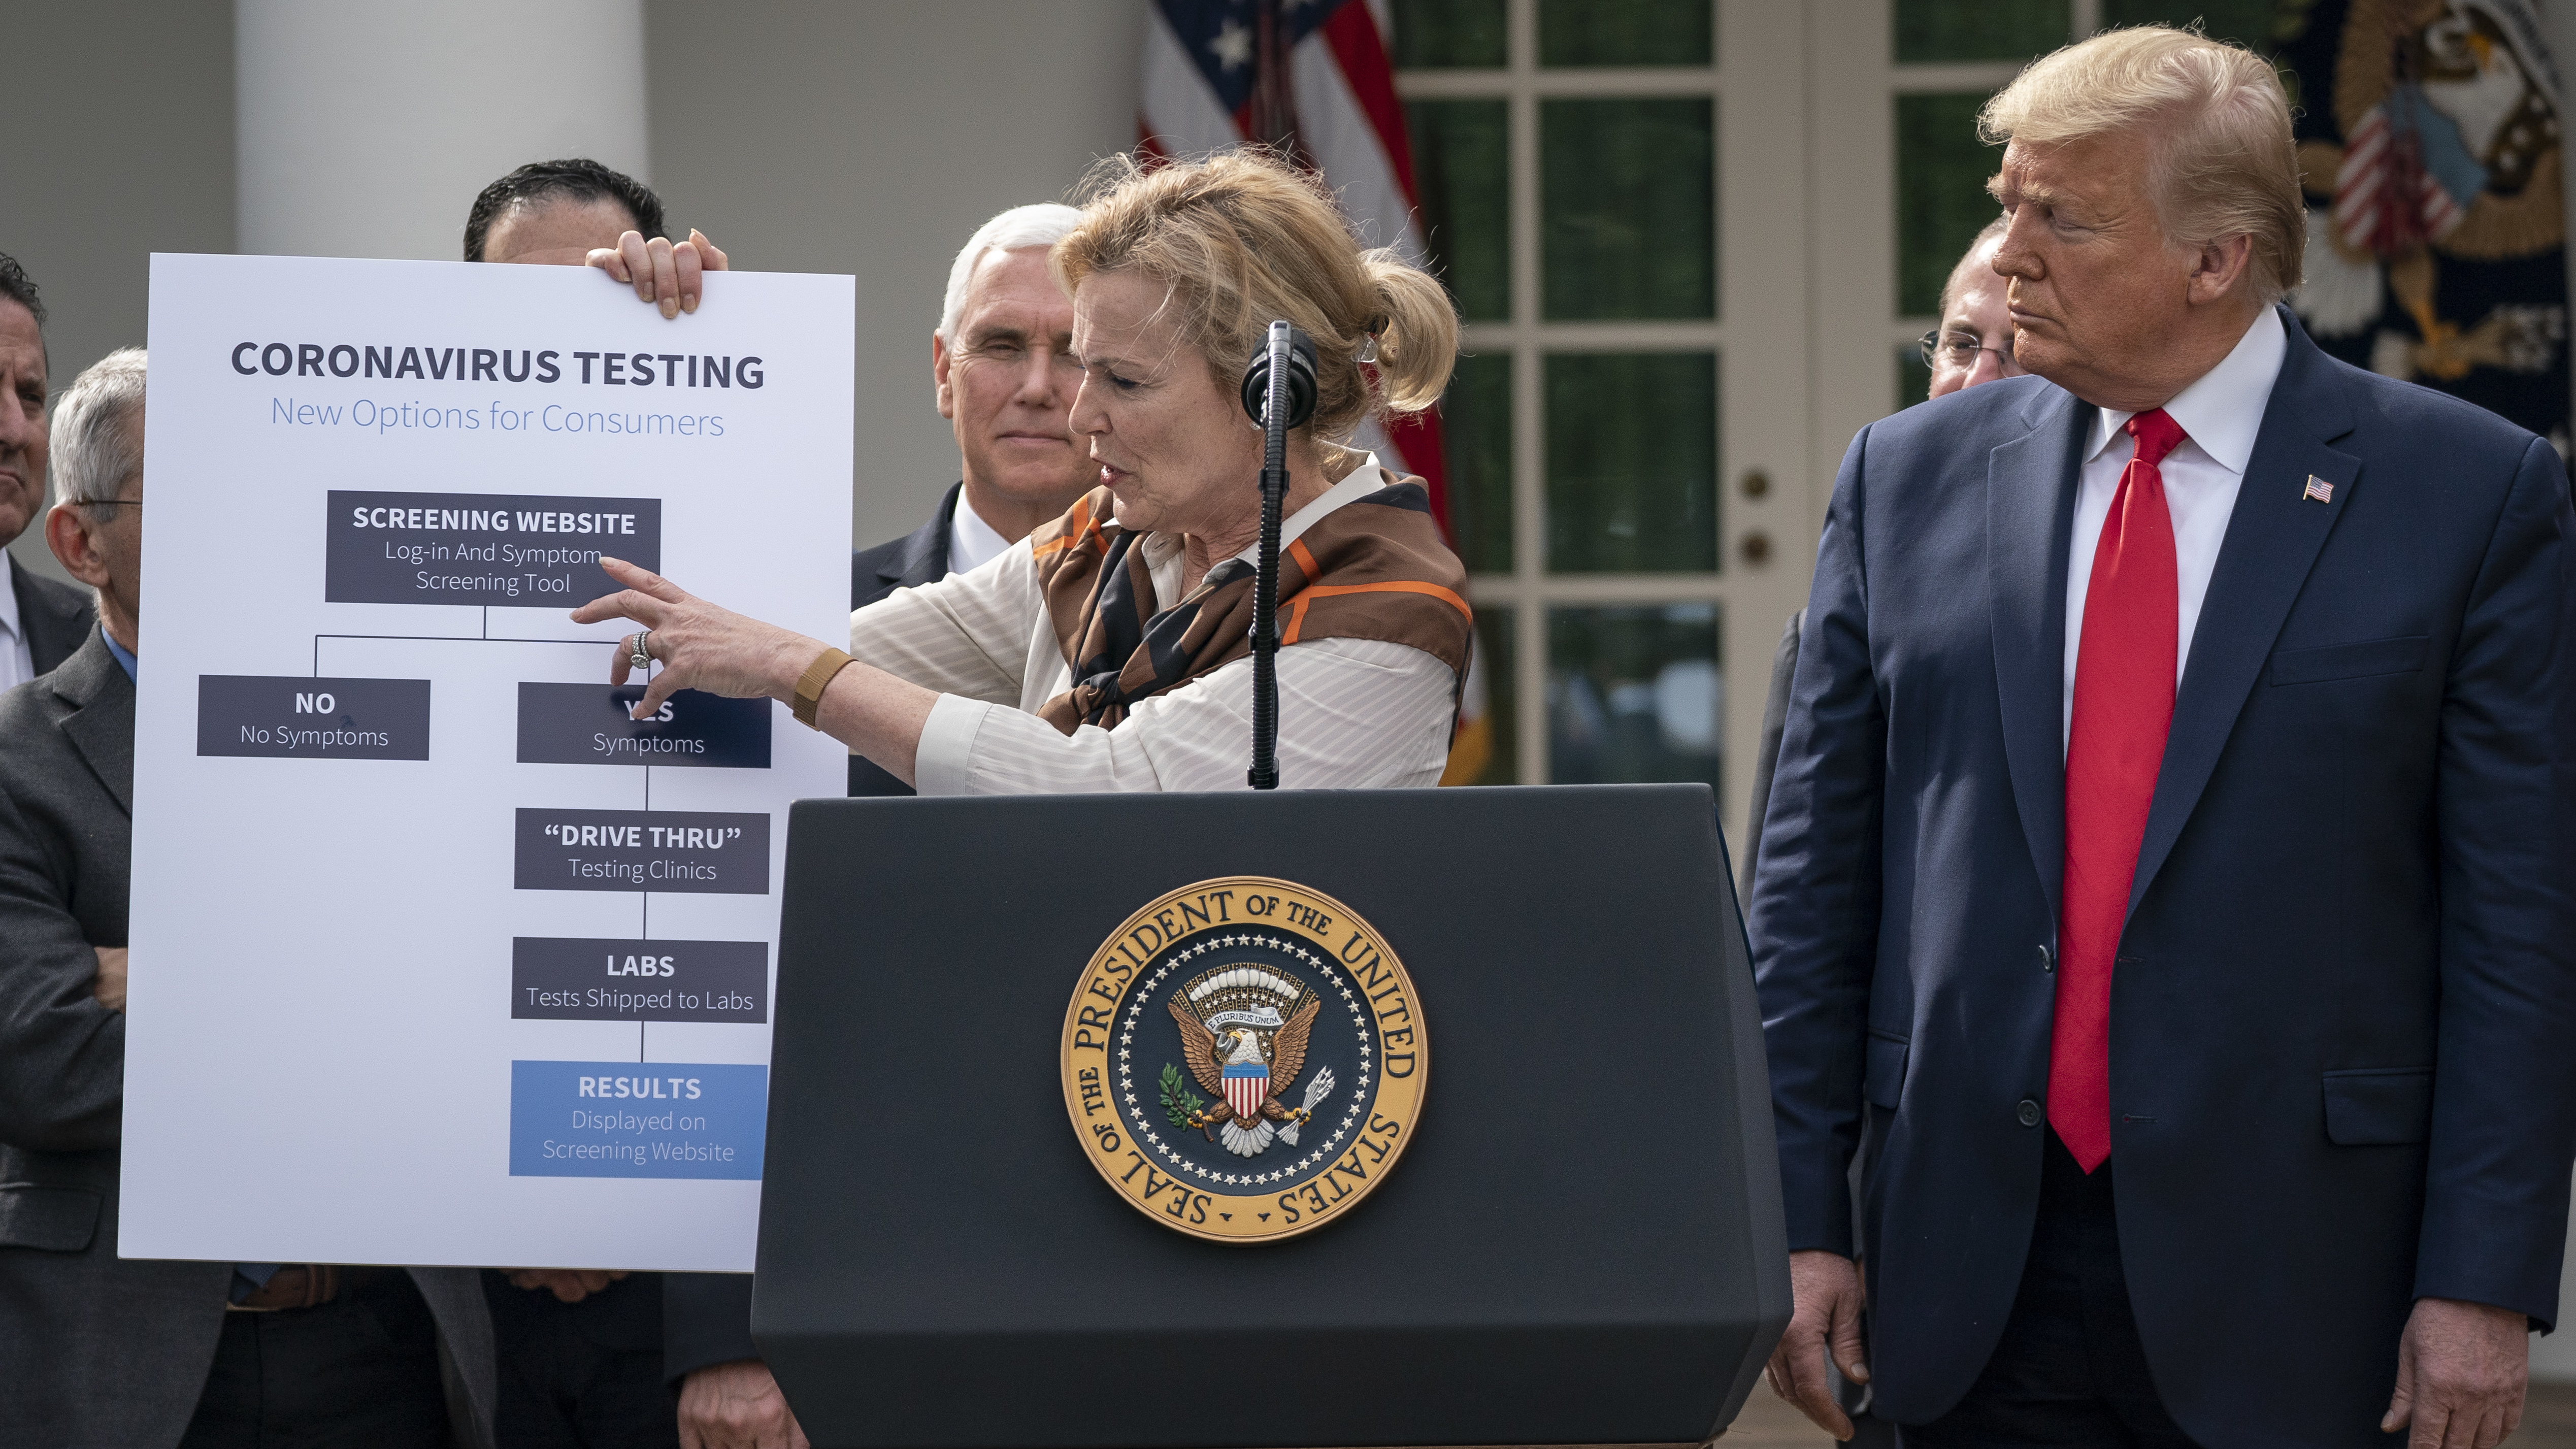 White House coronavirus response coordinator Dr. Deborah Birx shows how coronavirus testing will be streamlined at the press conference.